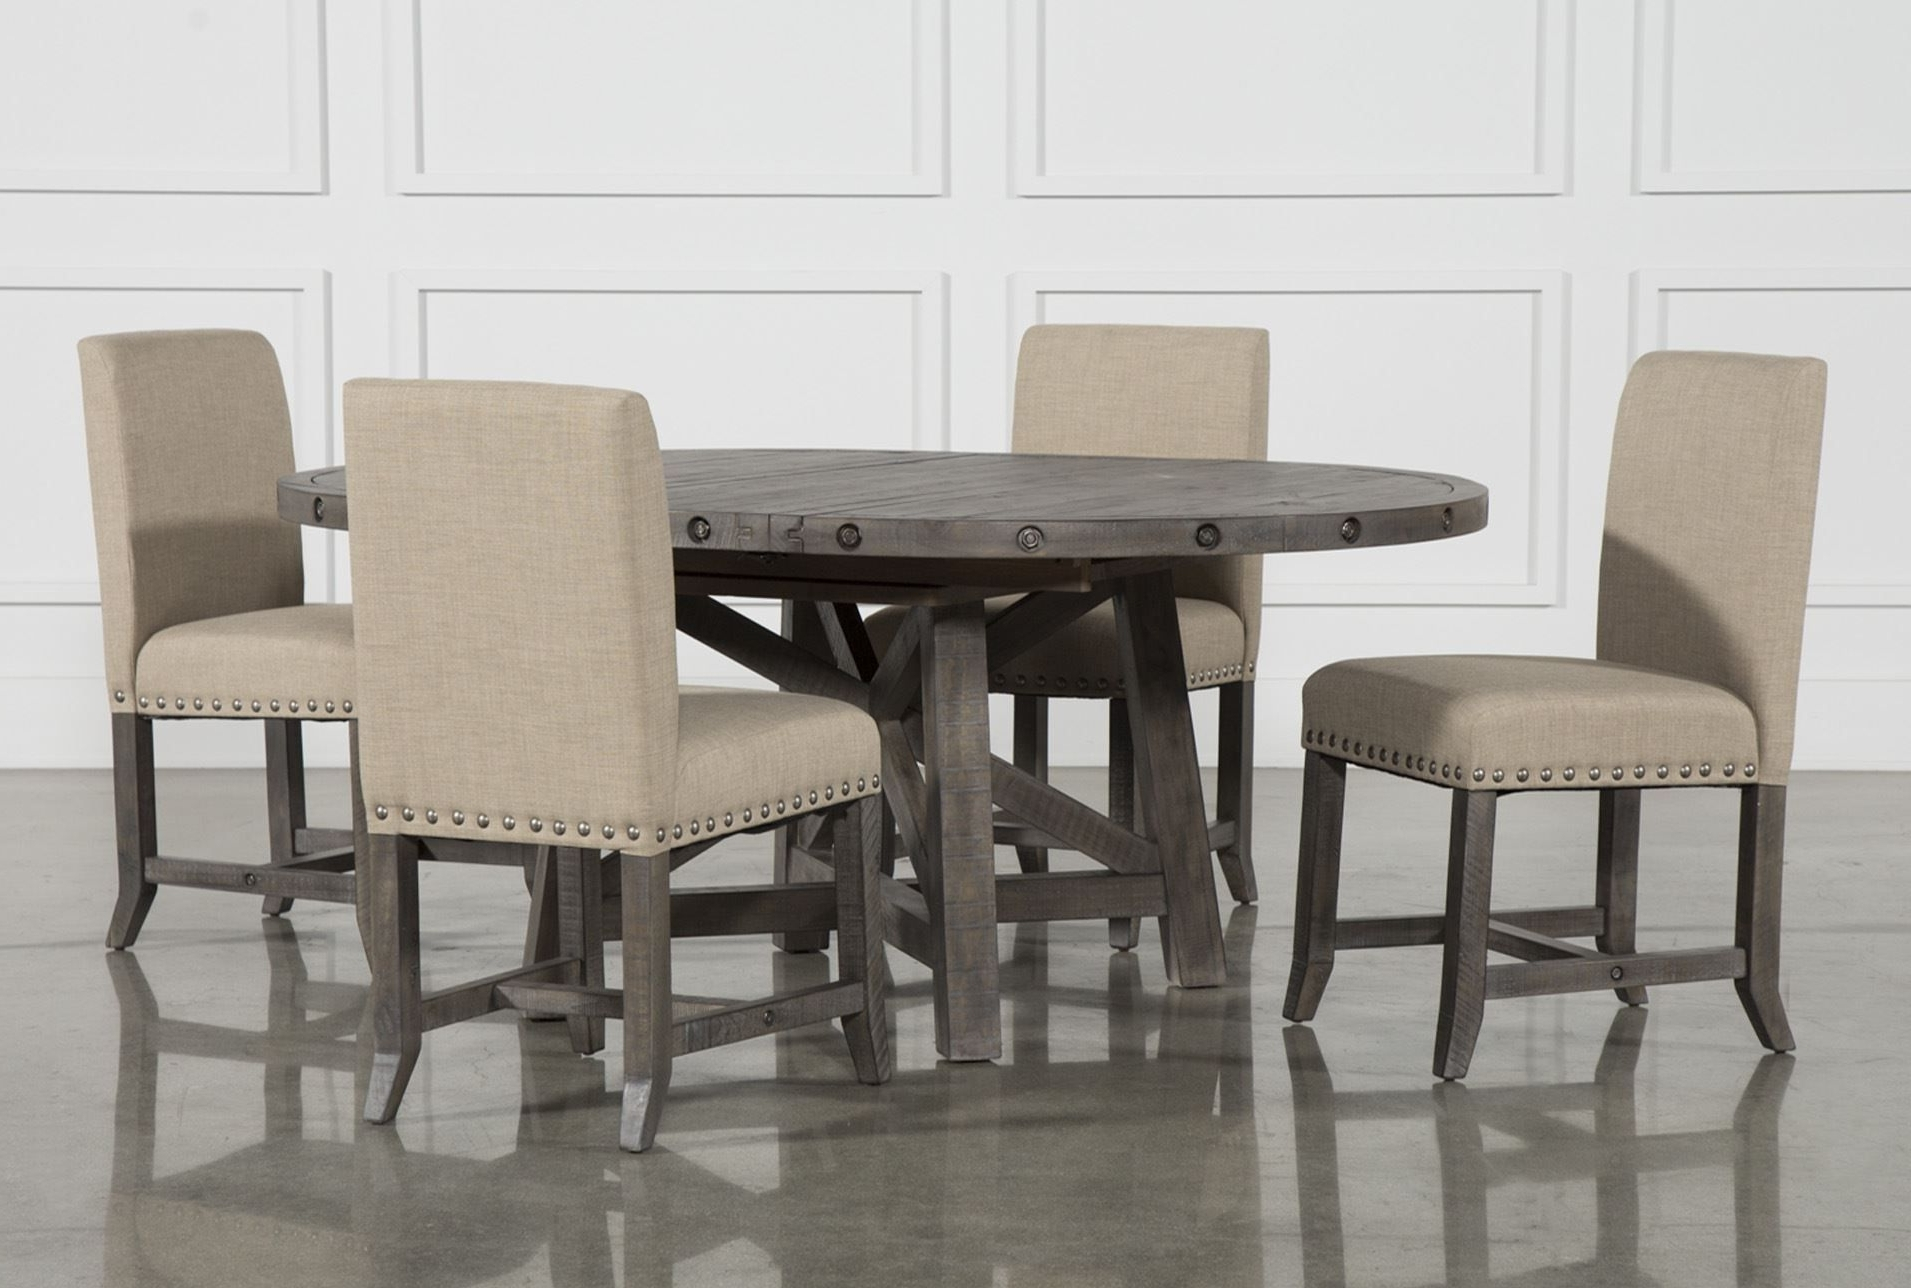 Well Known Jaxon Grey 5 Piece Round Extension Dining Set W/upholstered Chairs Intended For Jaxon Grey 6 Piece Rectangle Extension Dining Sets With Bench & Wood Chairs (View 6 of 25)